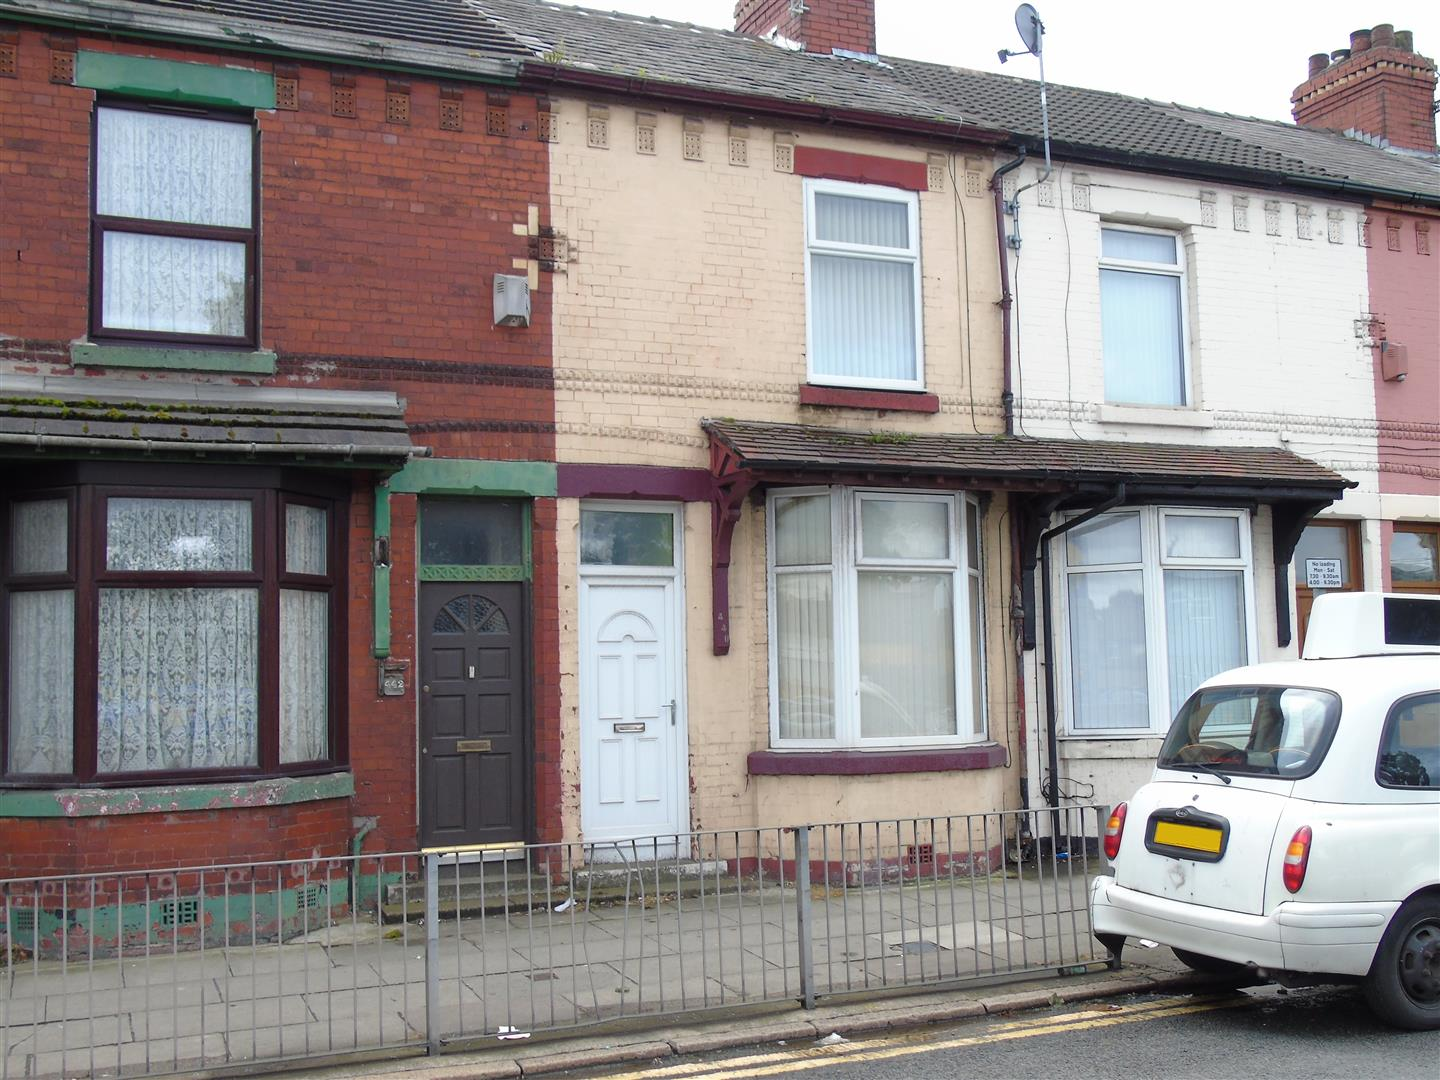 2 Bedrooms, House - Mid Terrace, Longmoor Lane, Fazakerley, Liverpool